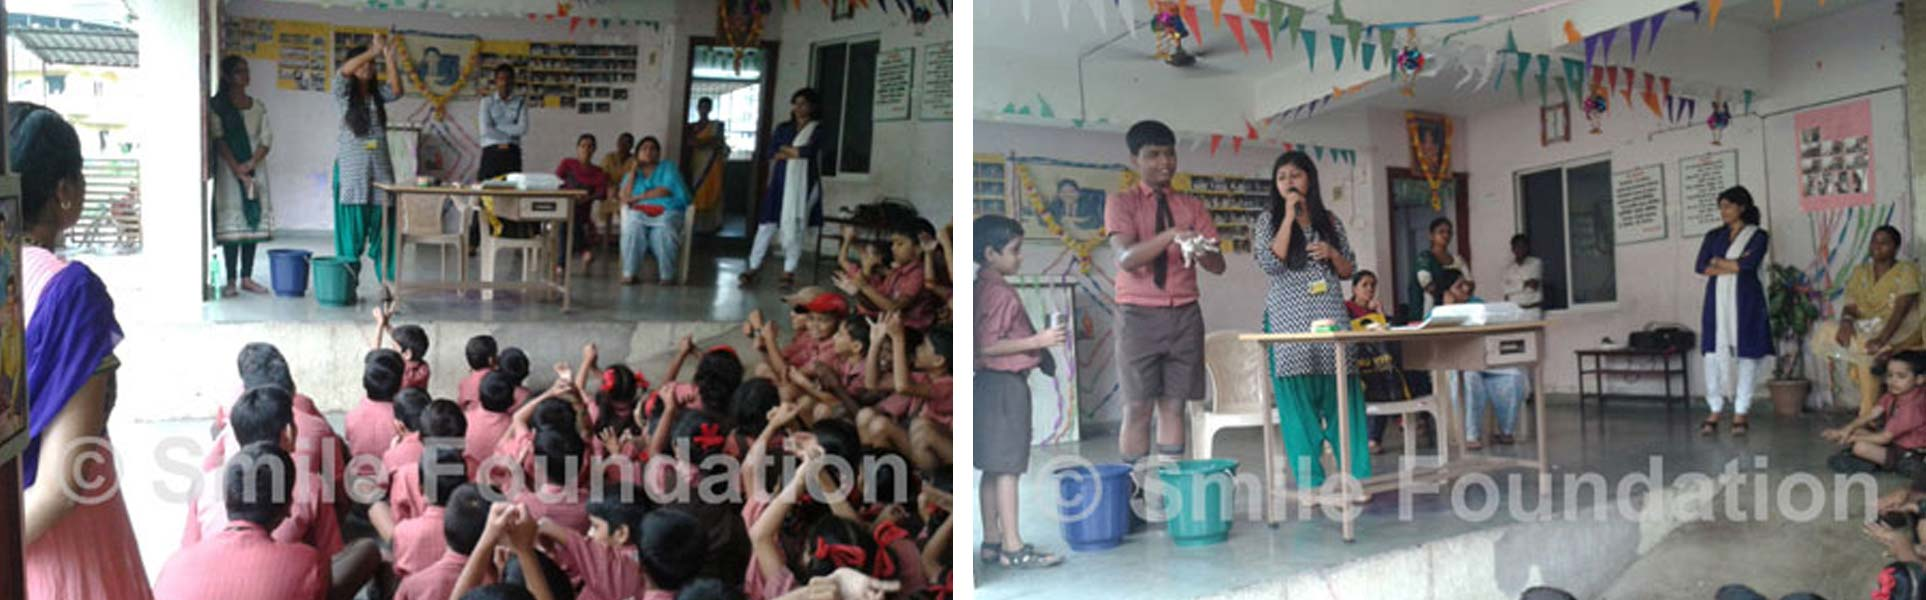 Hygiene workshop for New City International School students